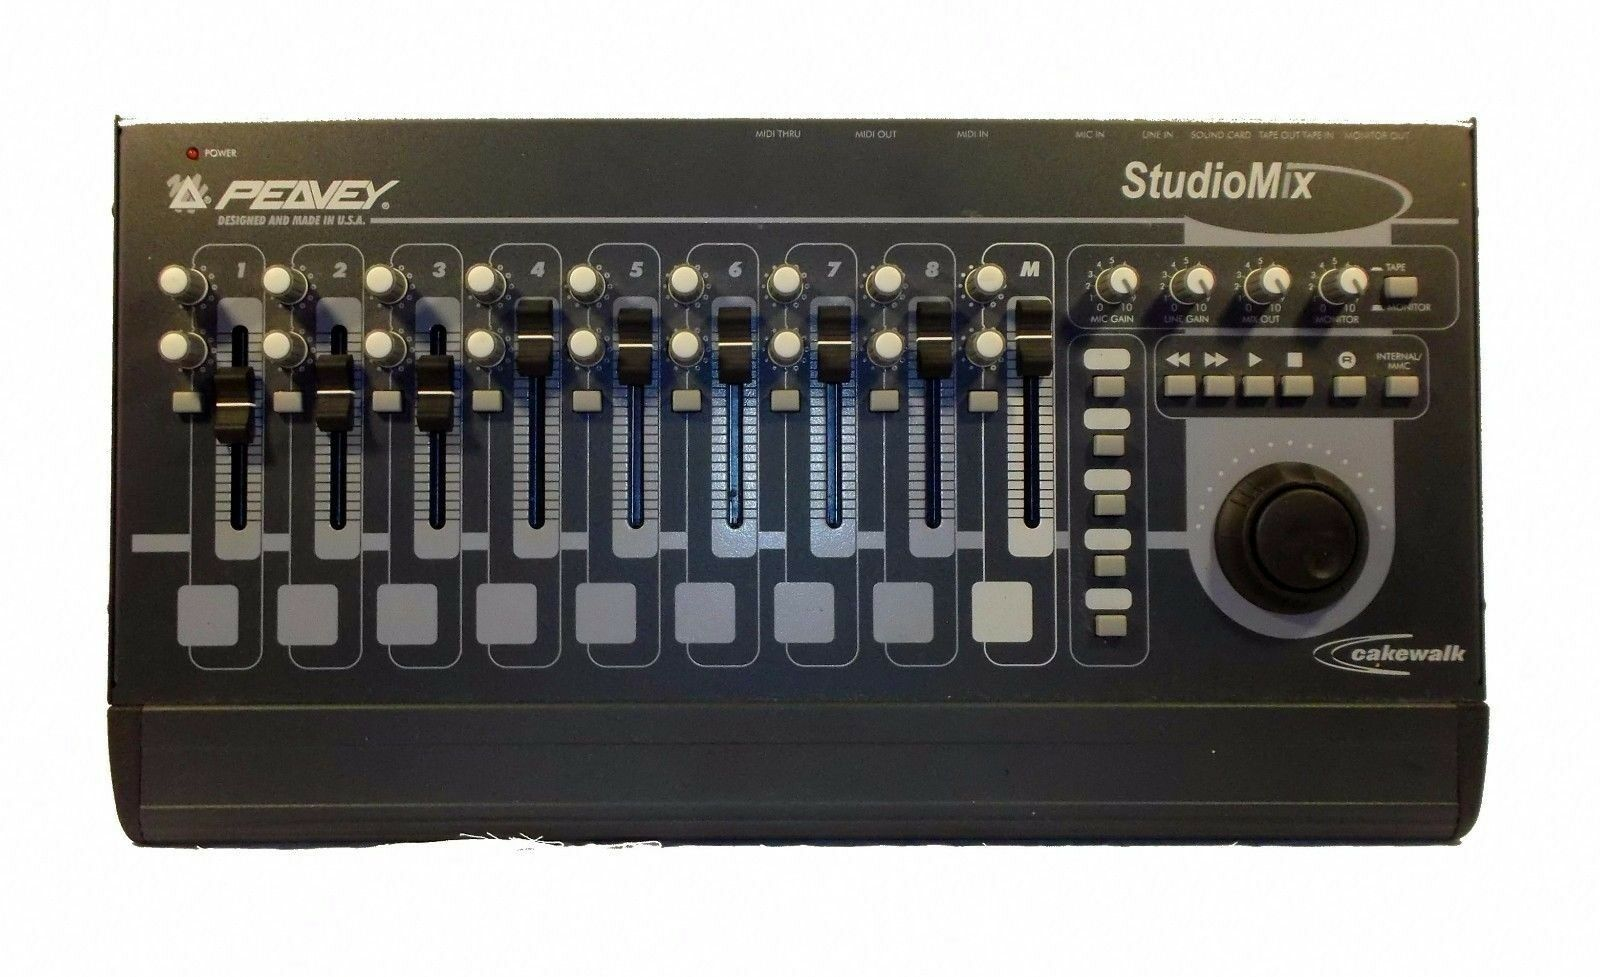 Peavey StudioMix Cakewalk Live Studio Mixer - Made in USA. Tested Work Perfect